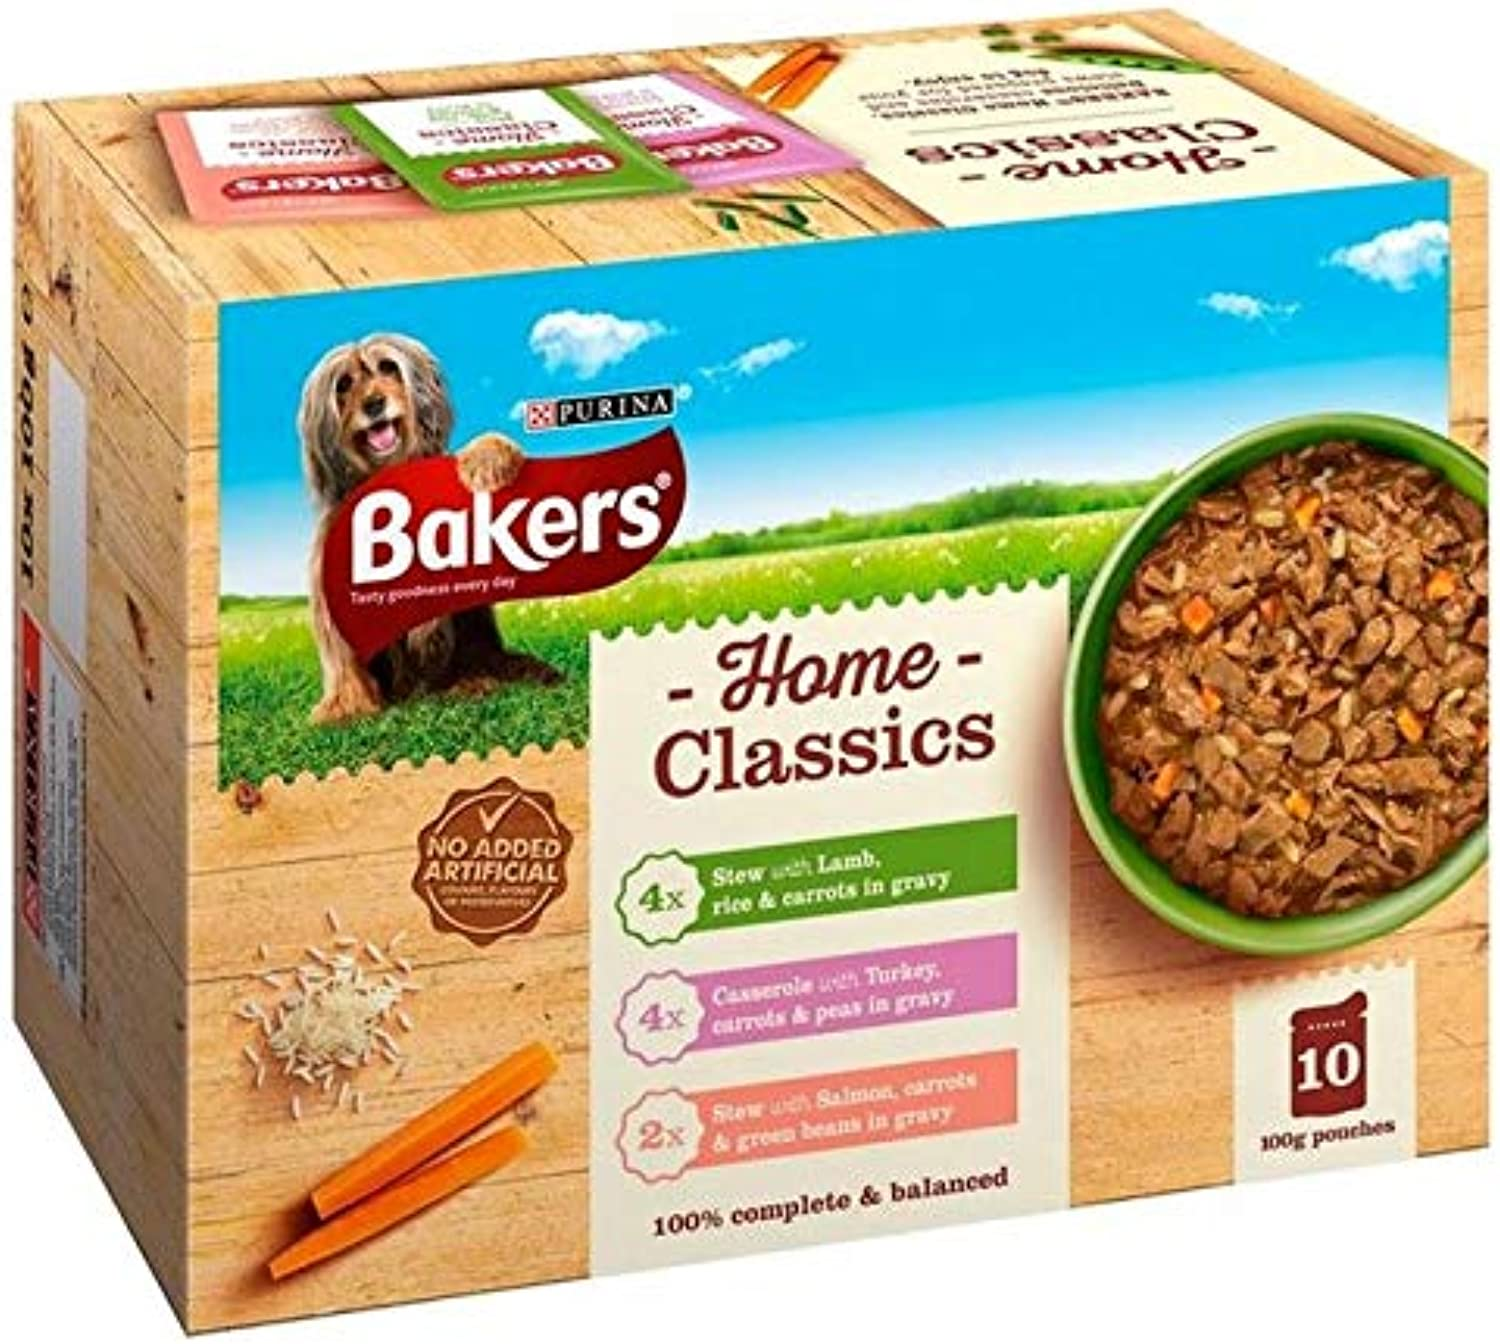 4X Bakers Home Classics Turkey, Lamb and Salmon 10 x 100g